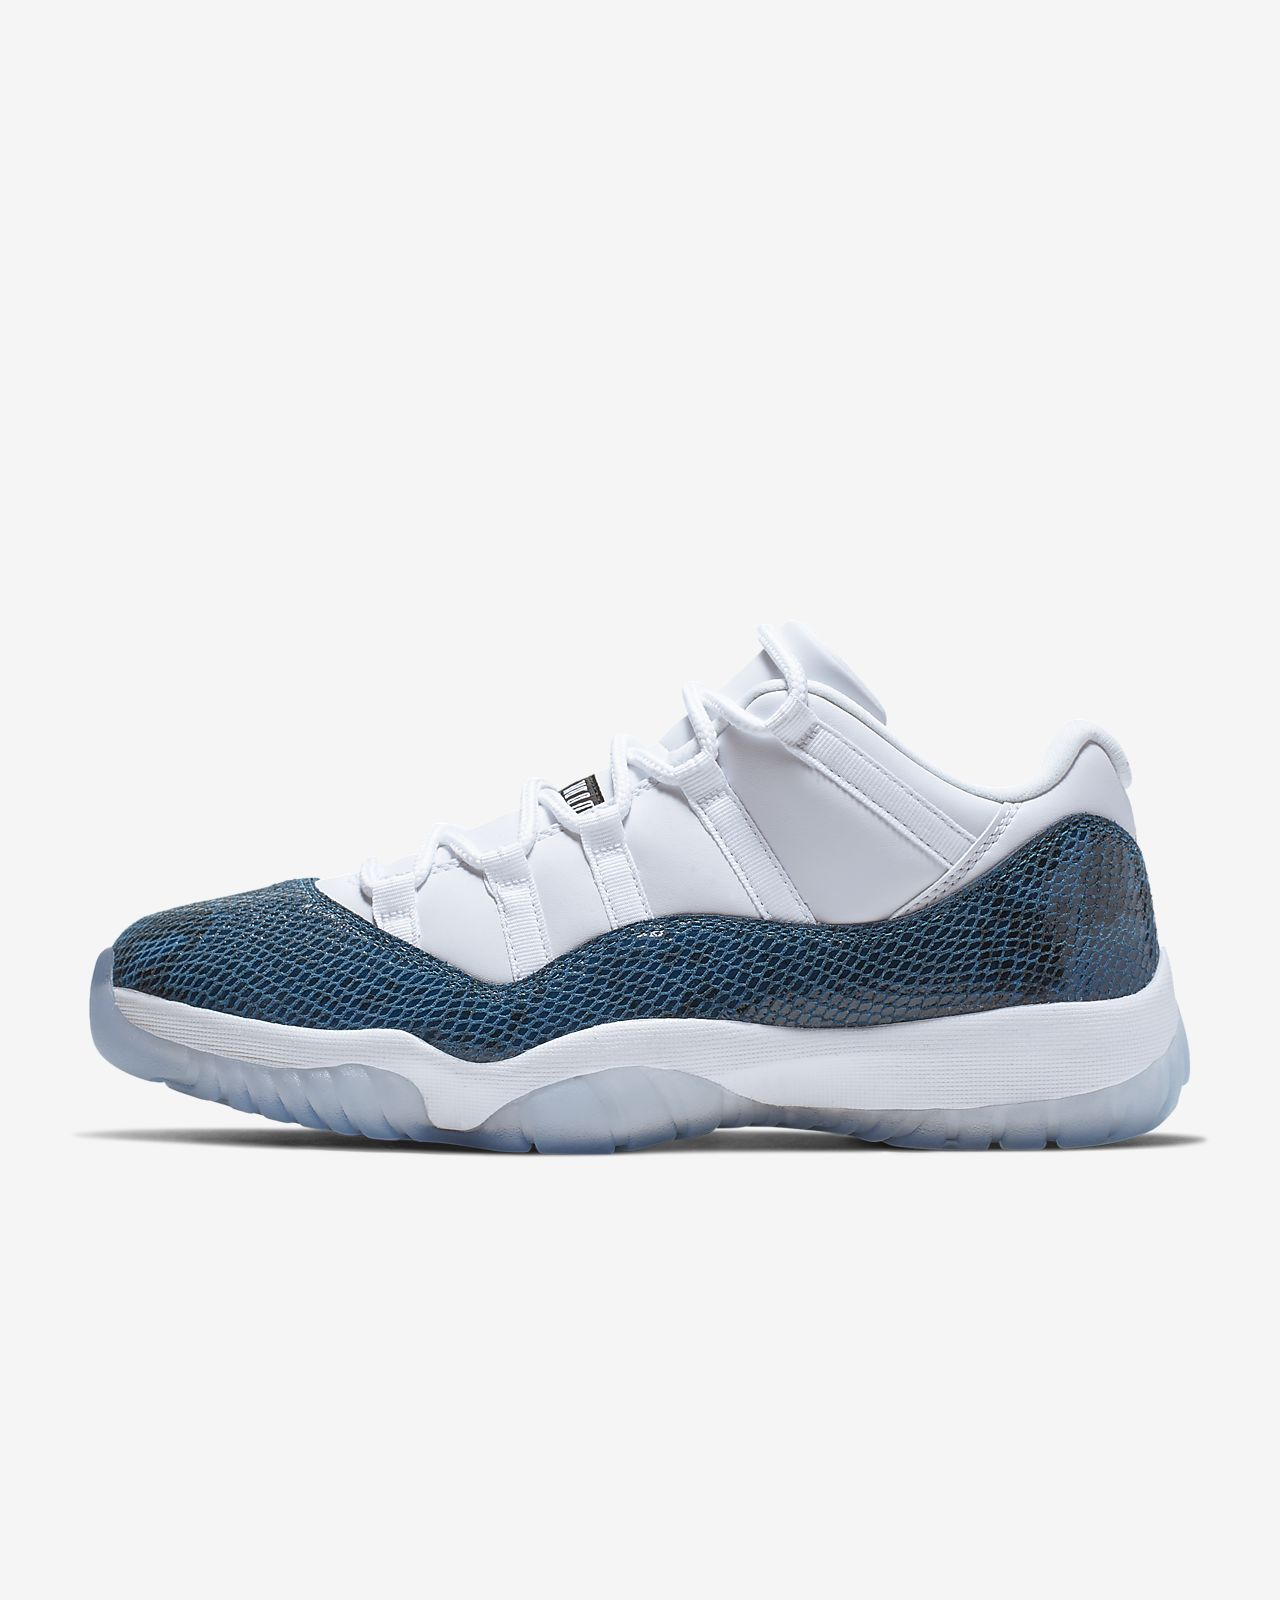 6f416bf7f43 Air Jordan 11 Retro Low LE Men's Shoe. Nike.com